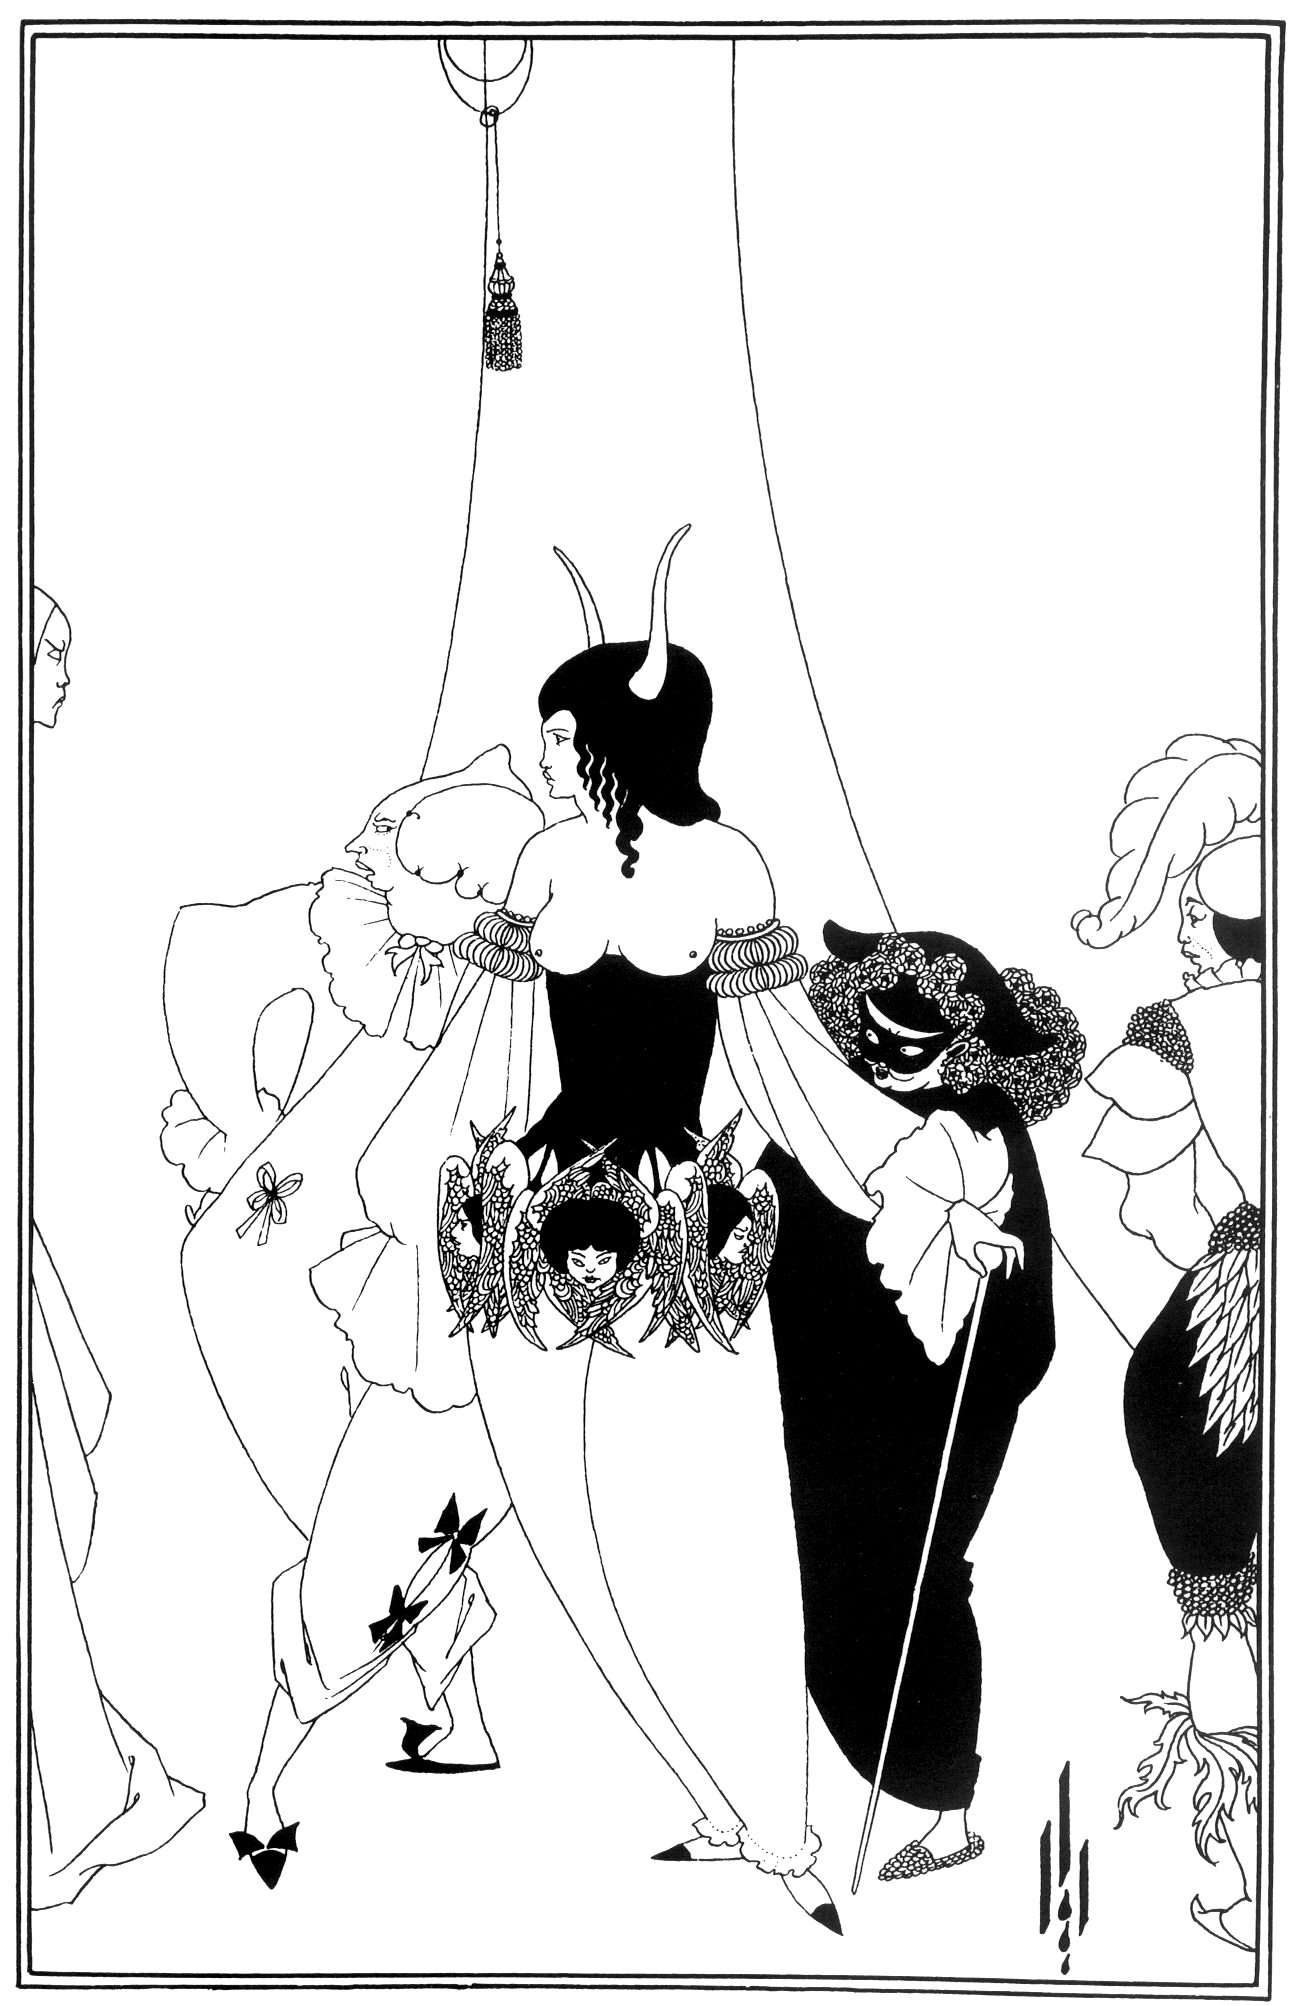 Aubrey Beardsley, The Mask of The Red Death